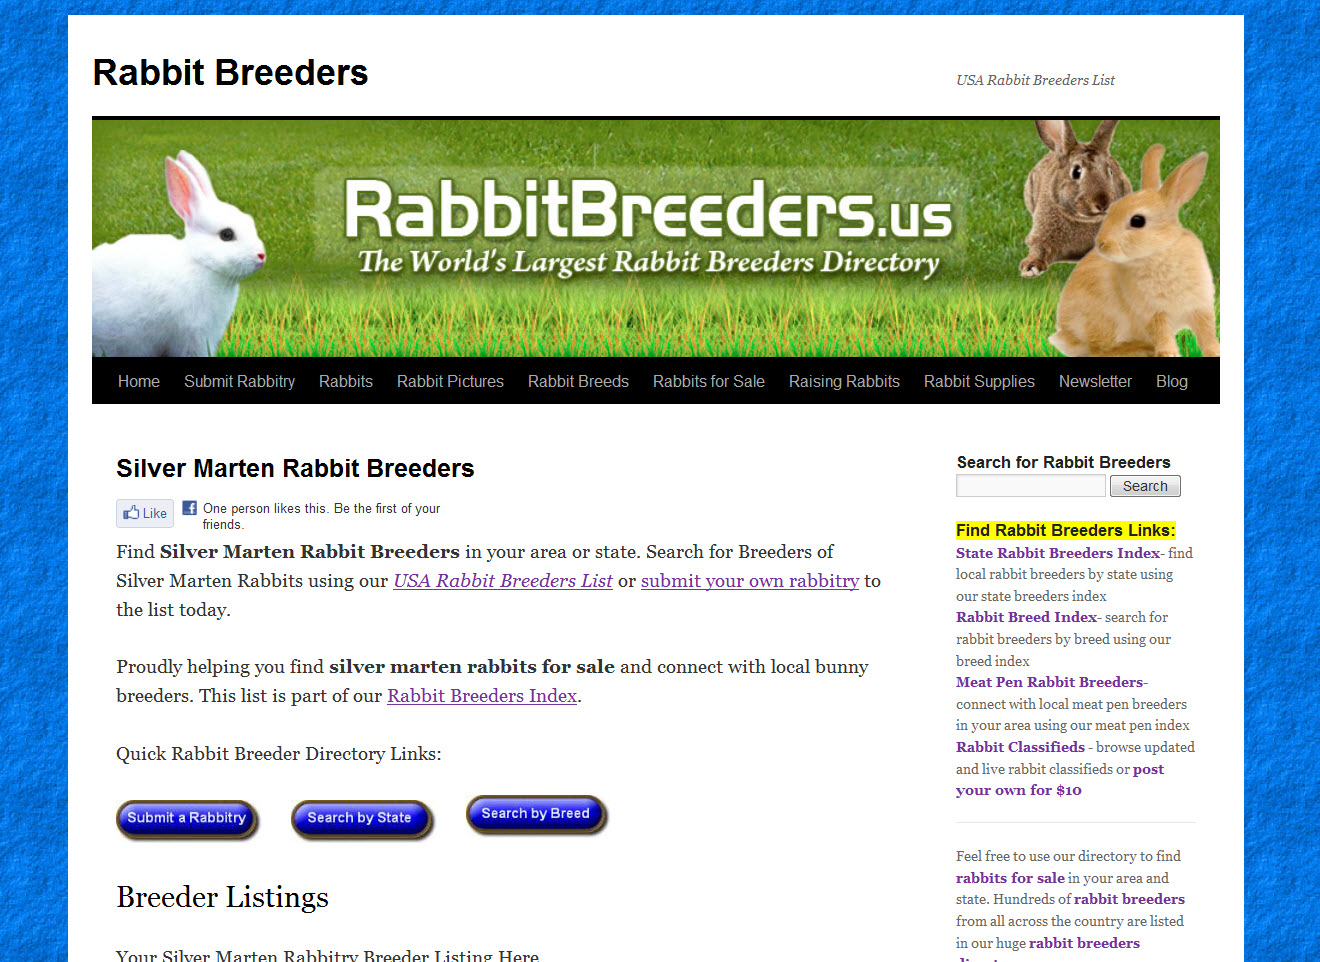 Silver Marten Rabbit Breeders